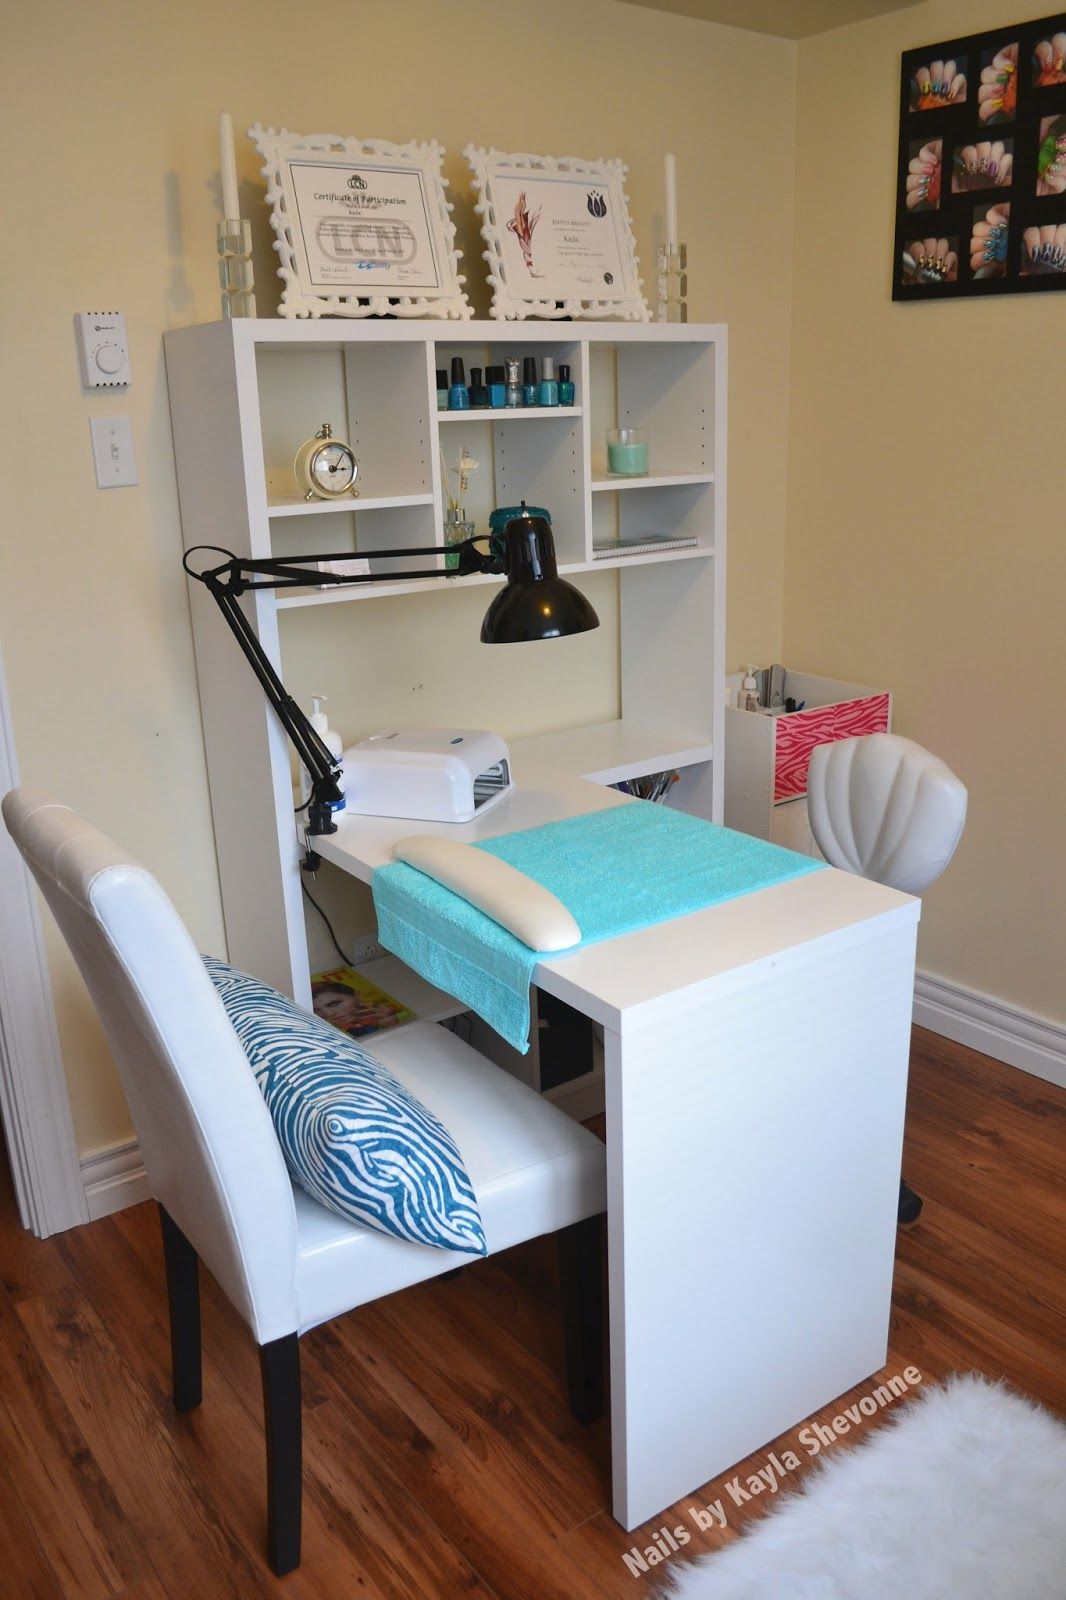 Home Design Business Ideas: Home Nail Salon Set Up Ideas